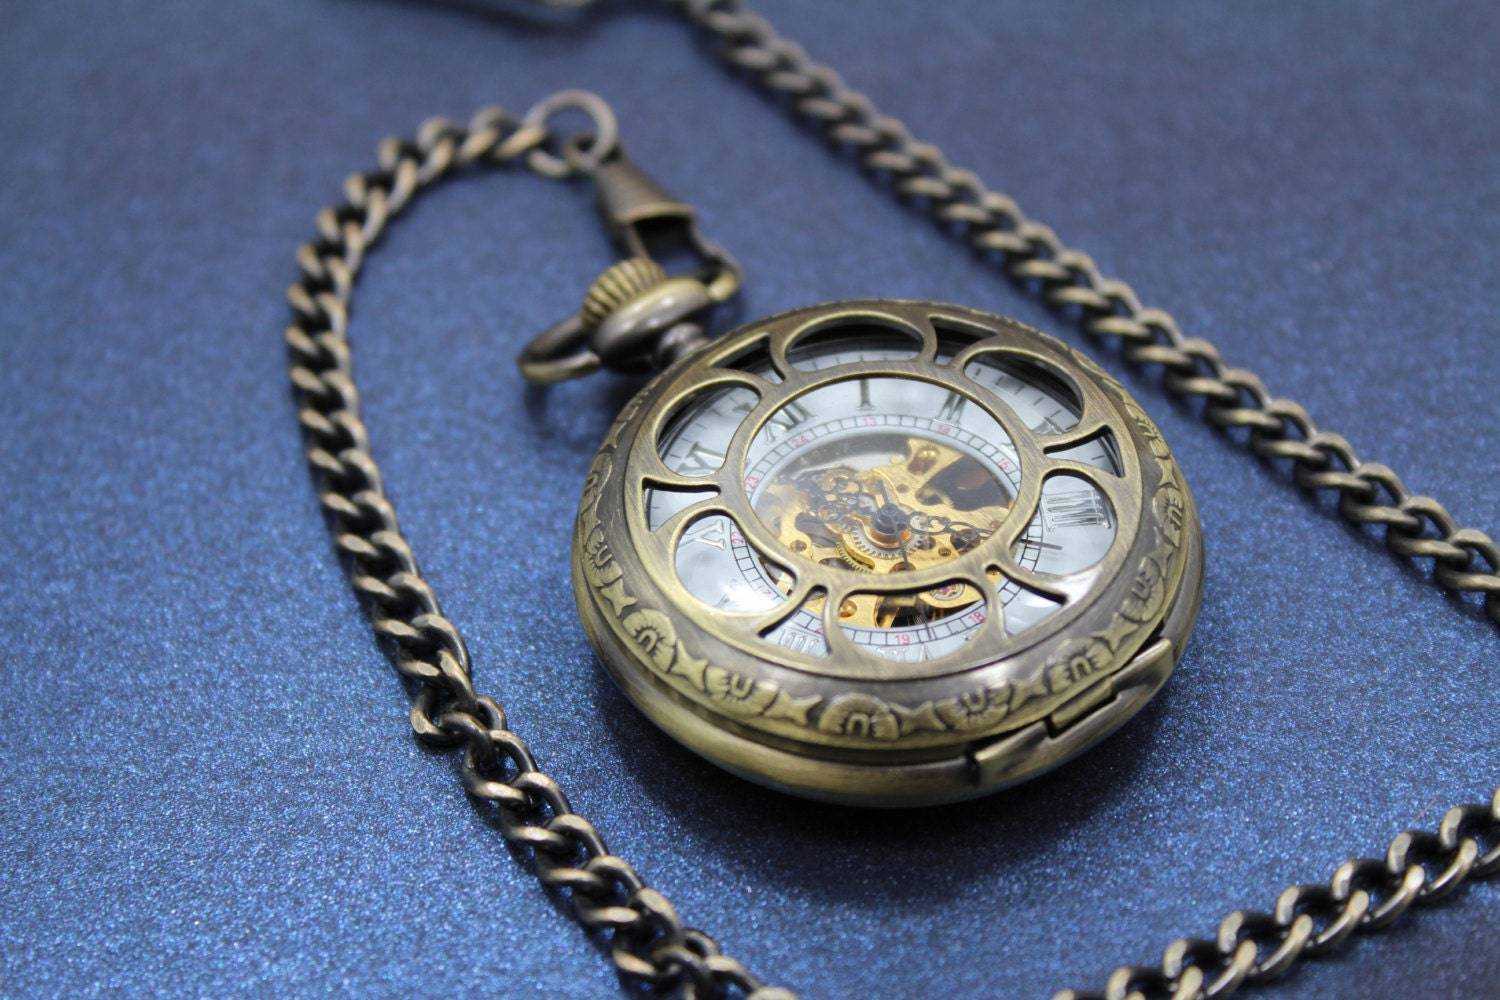 amazing brass mechanical pocket watch with gears exposed for